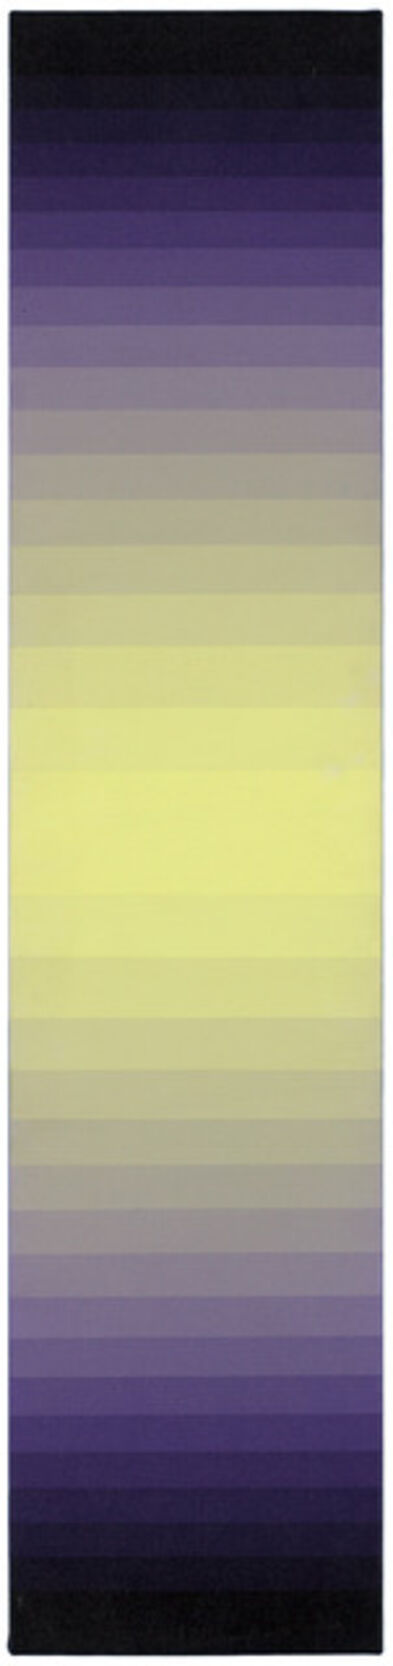 Norman Zammitt, 'Yellow to Violet II', 1978-1981